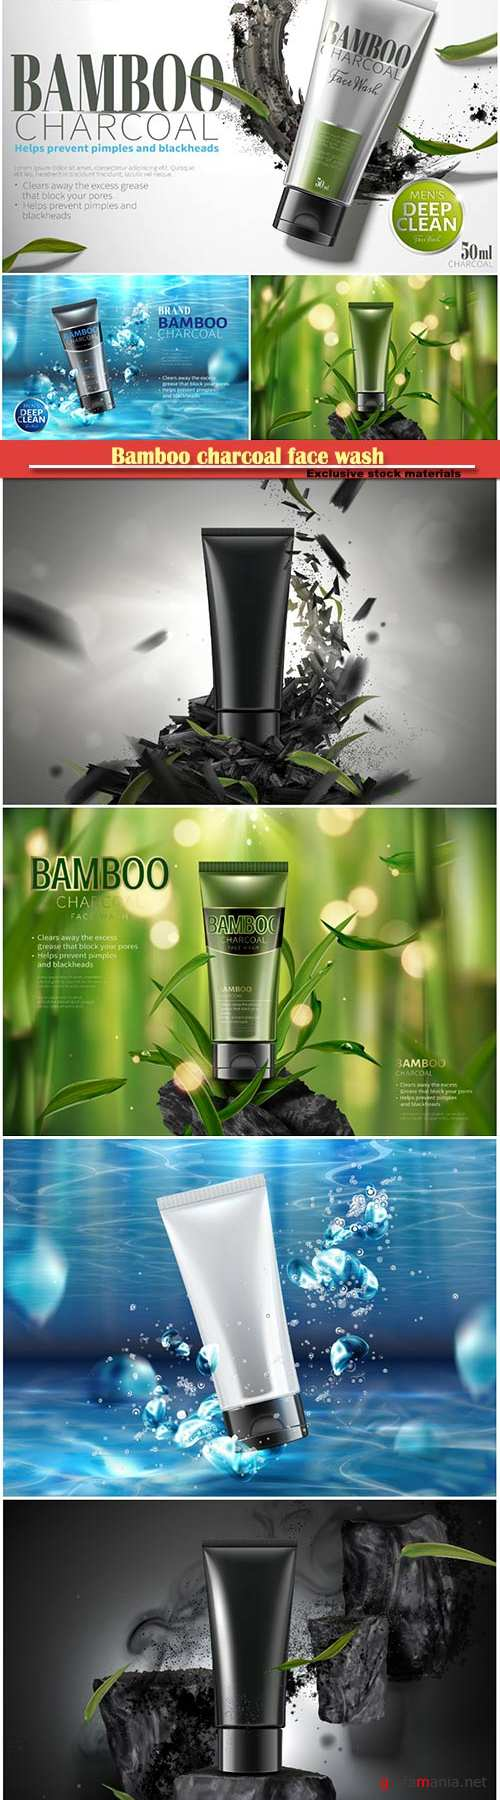 Bamboo charcoal face wash in 3d vector illustration